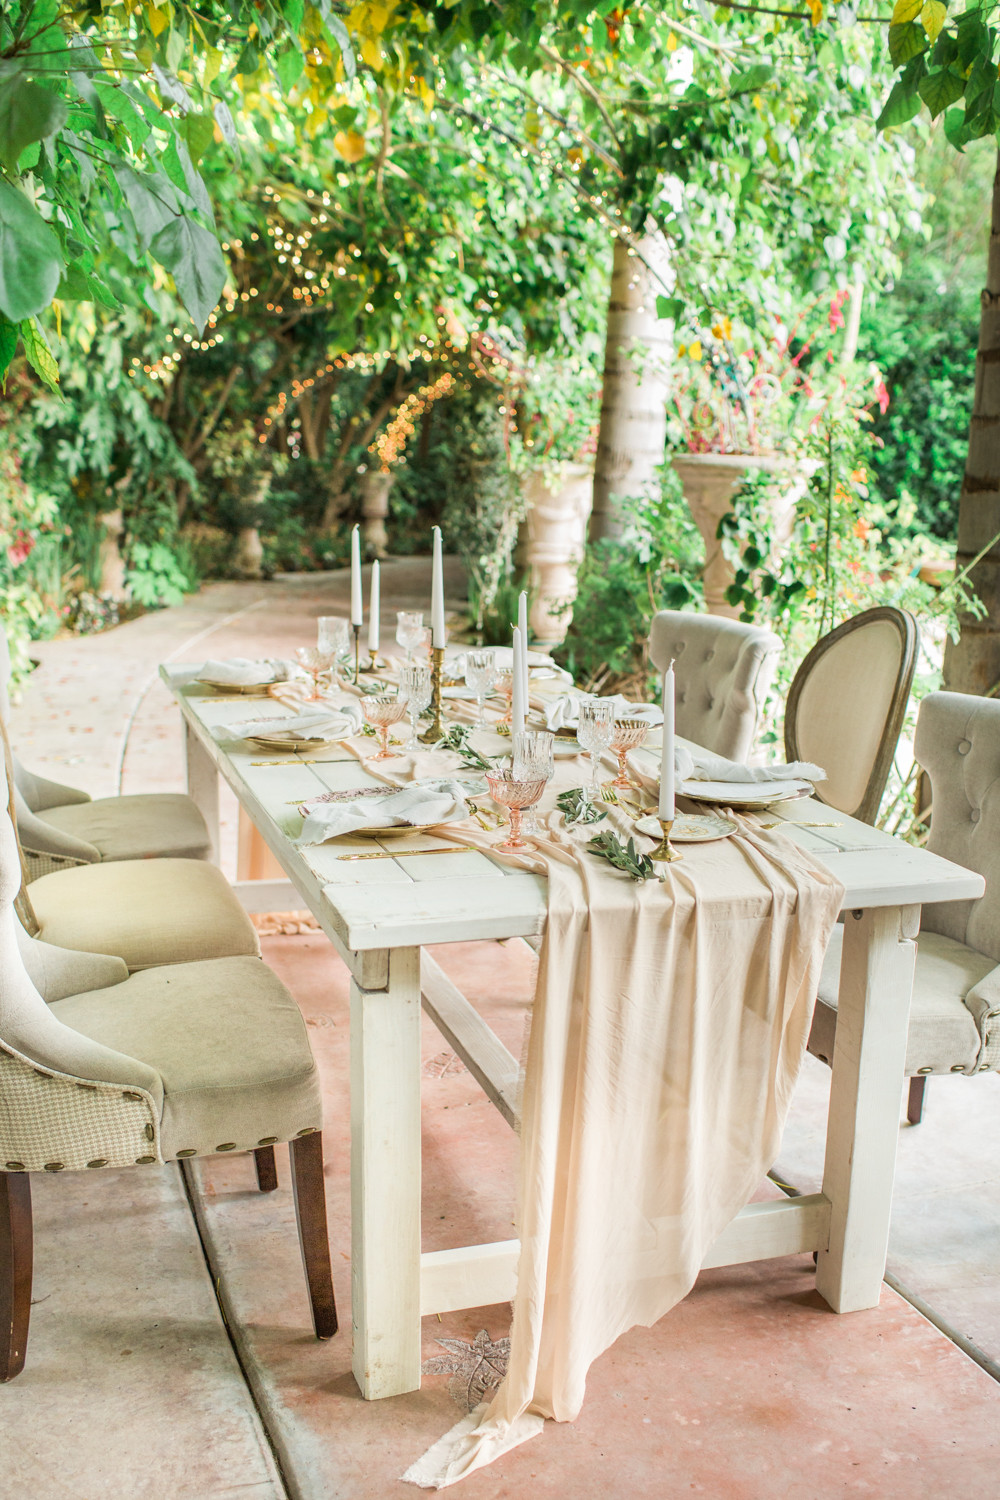 Dining table under a tree grove with mis-matched seating